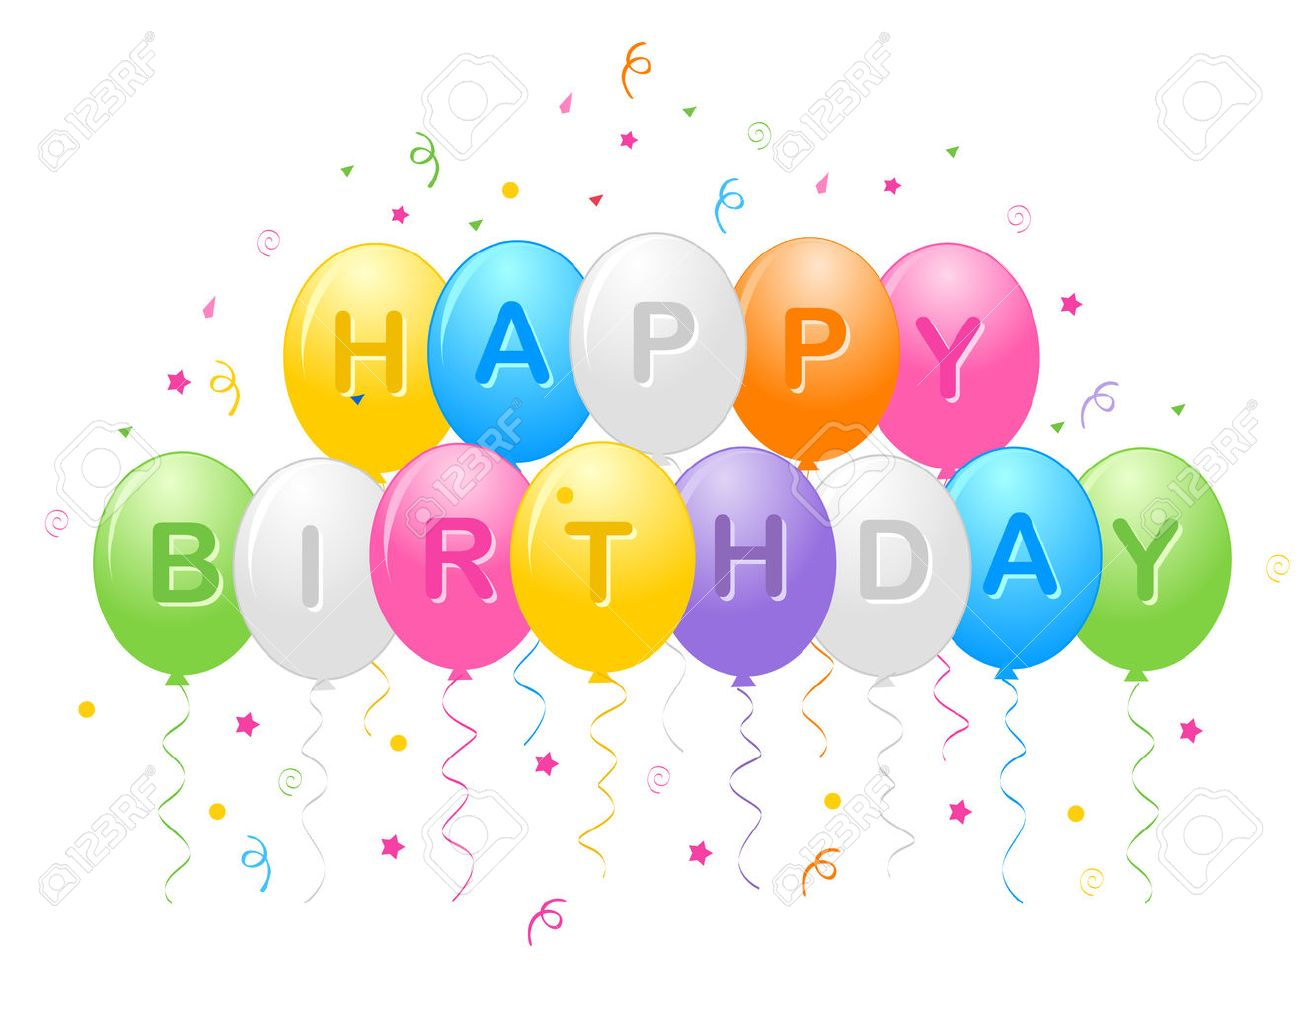 Birthday Greeting Card With Colorful Balloons And Confetti Happy Text Stock Vector